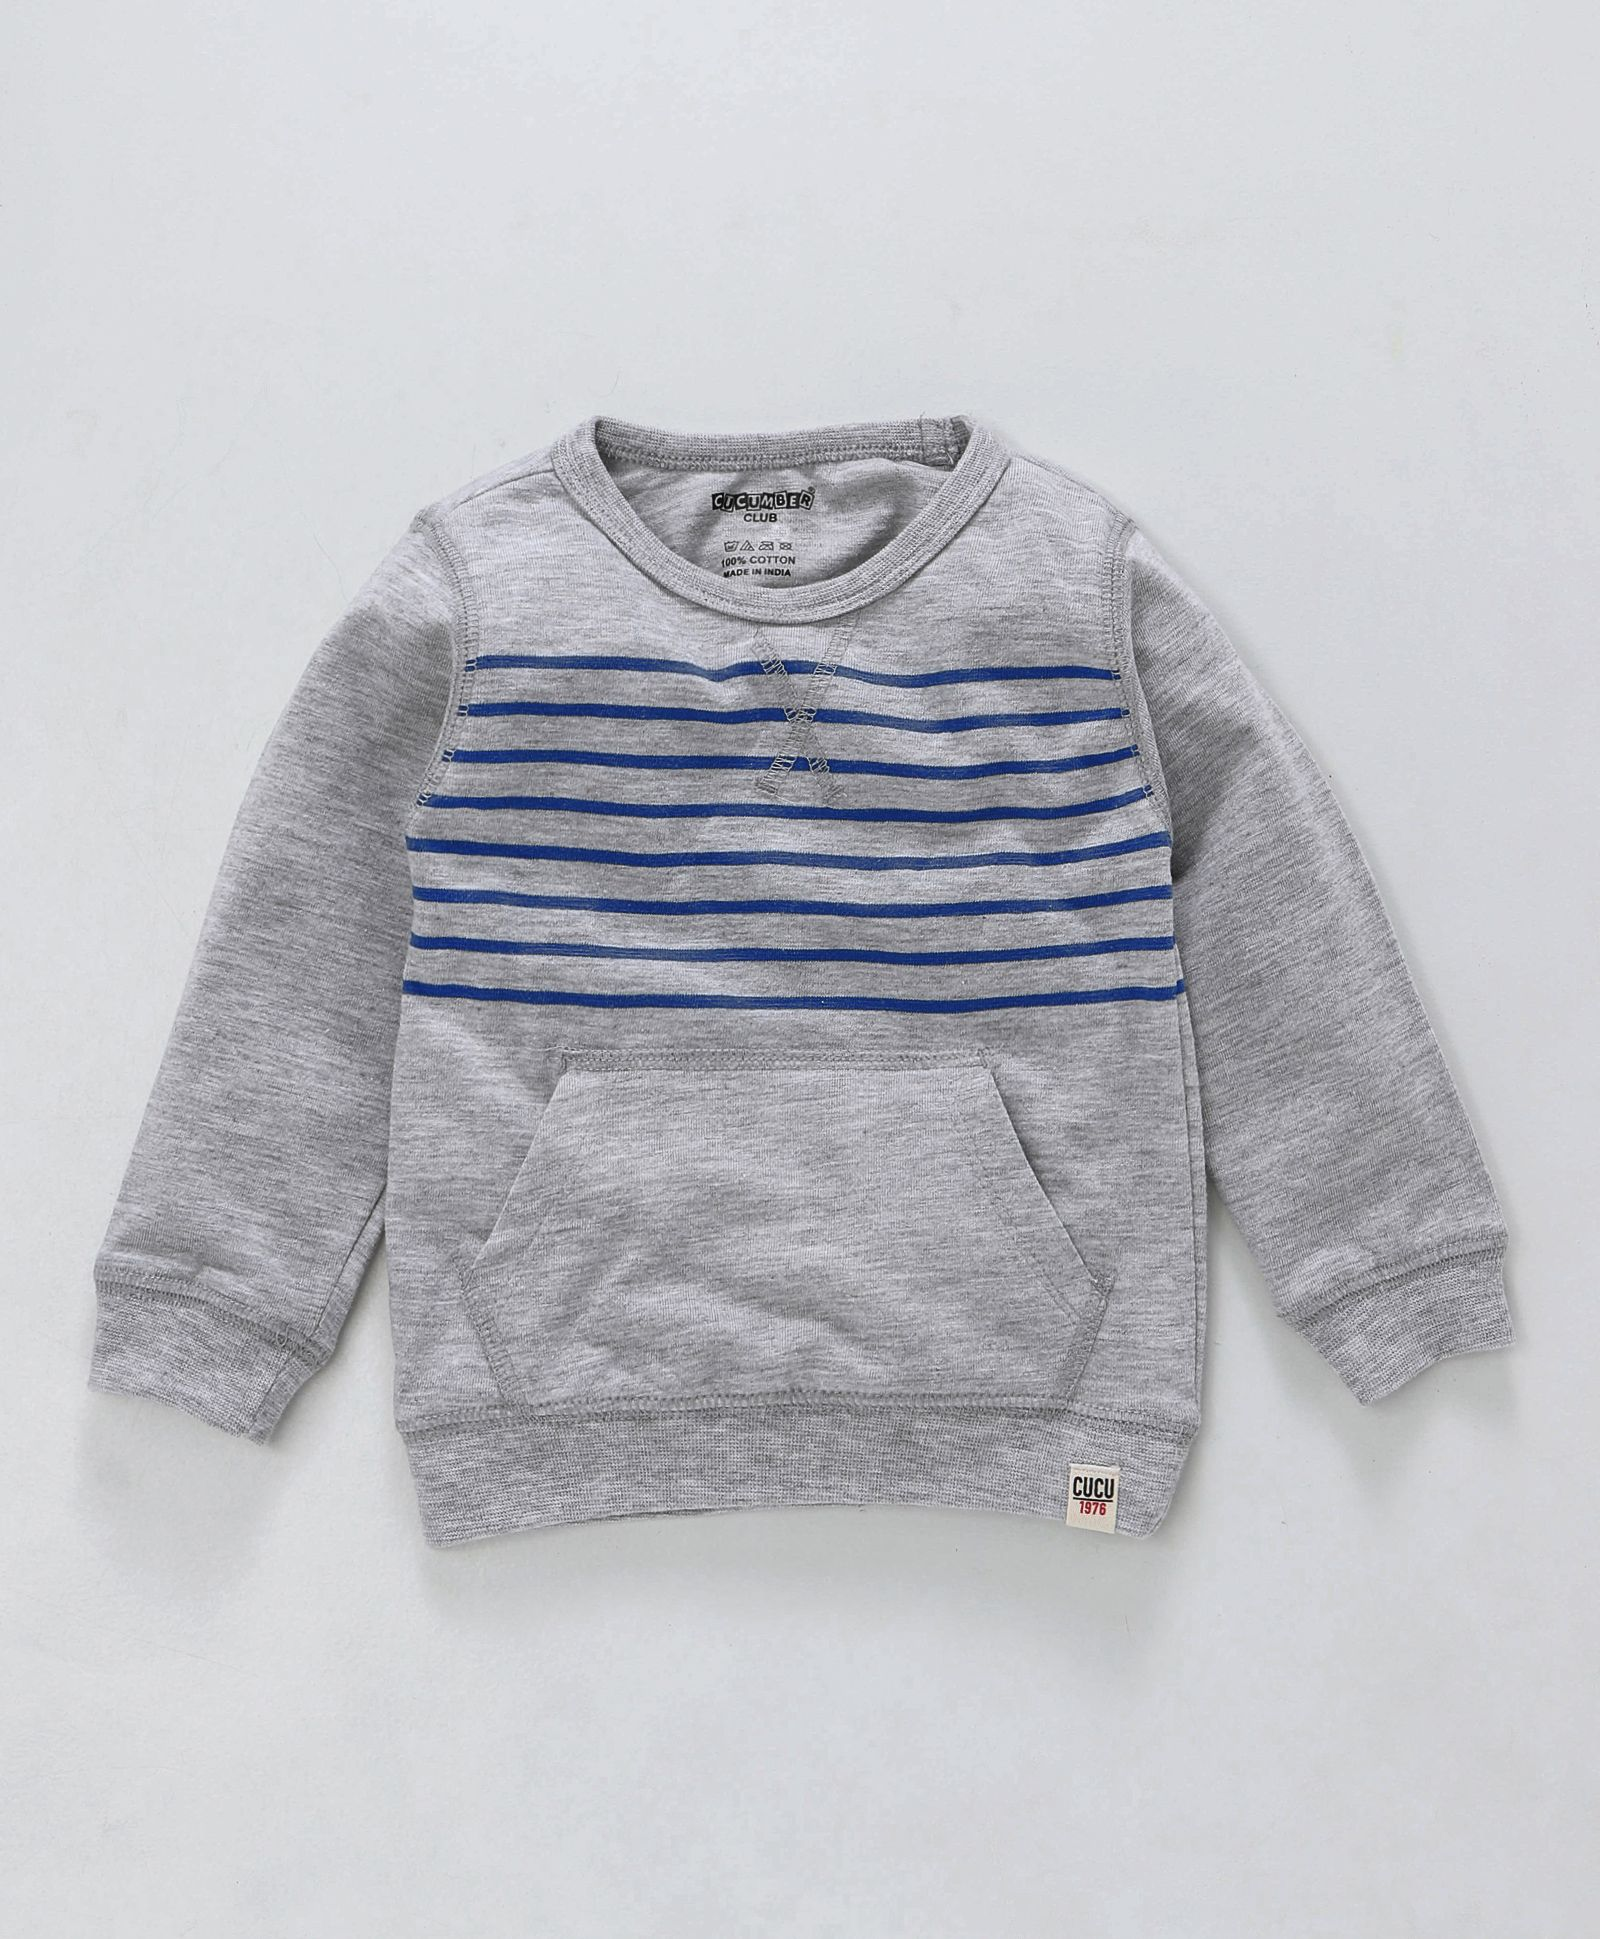 c867dd78f3d6 Buy Cucumber Full Sleeves Winter Wear Striped Tee With Pocket ...